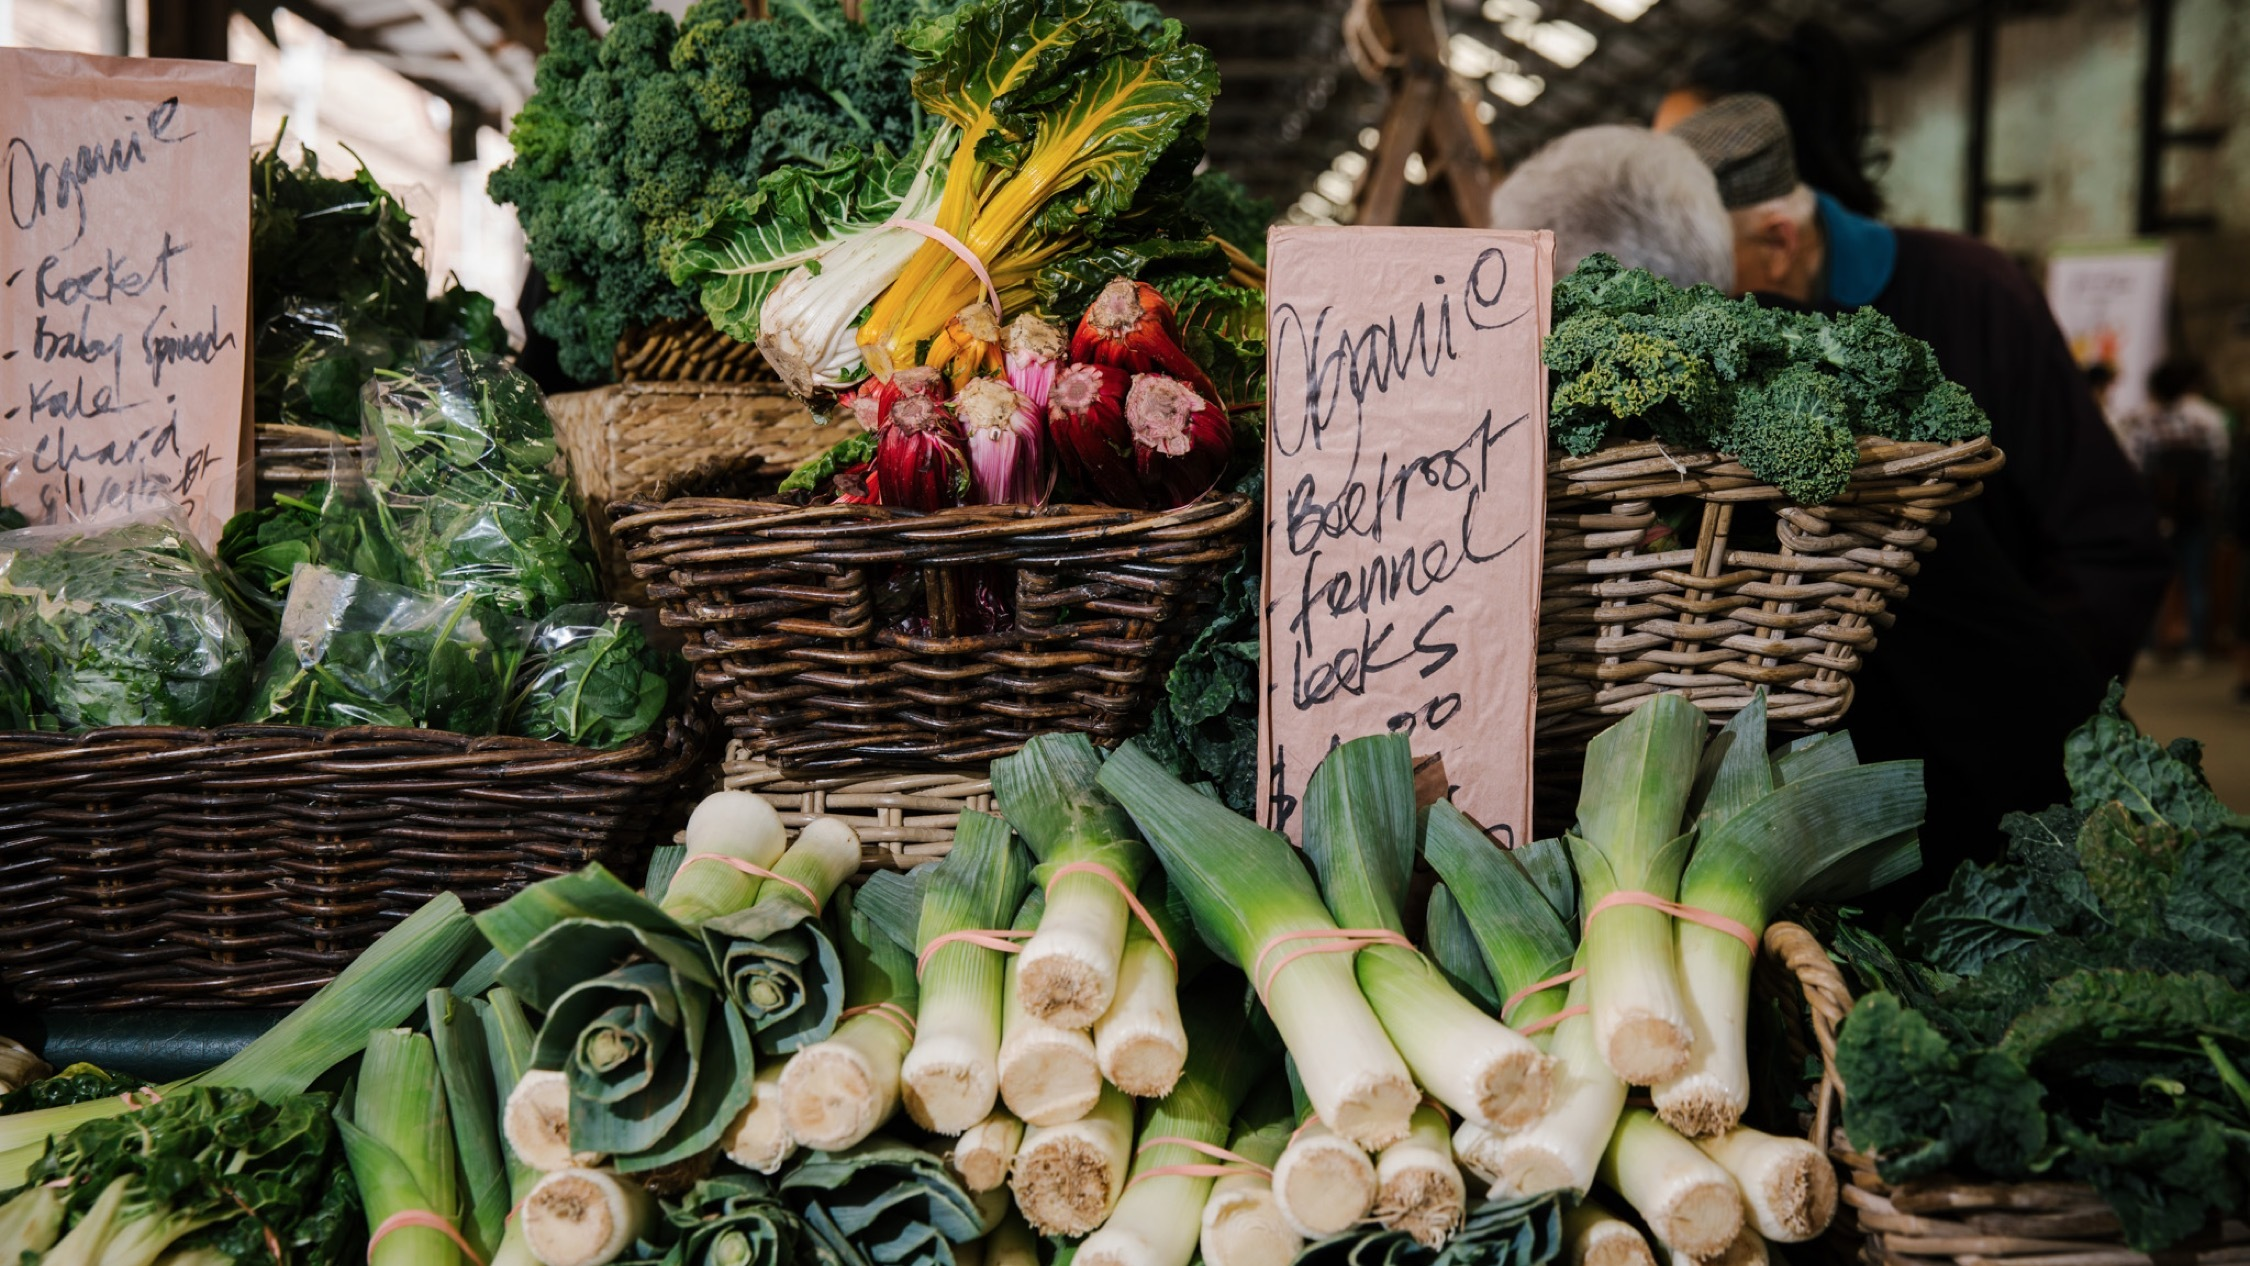 The 10 things you need to know about Victorian farmers markets